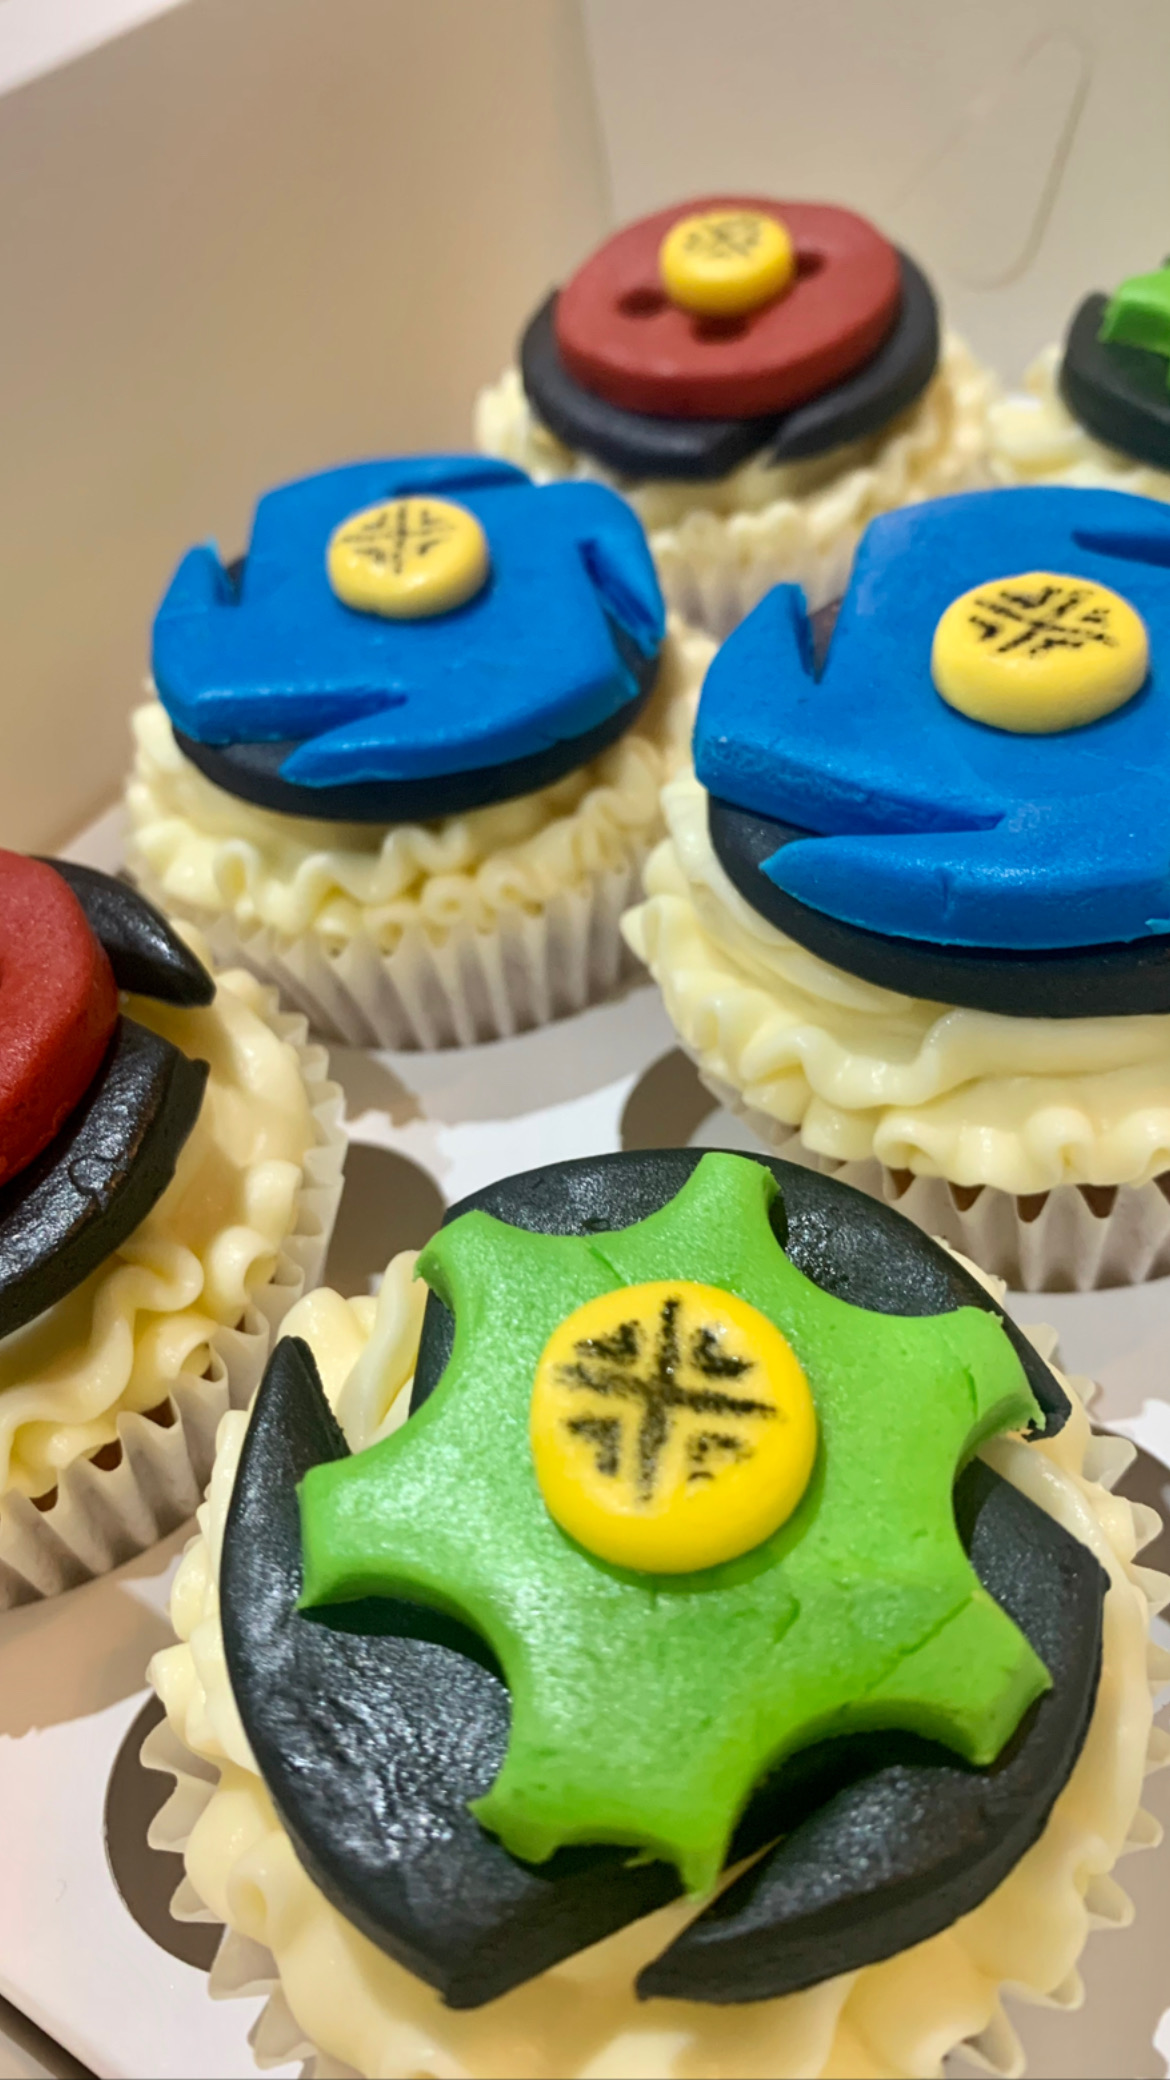 22.BeyBlade Themed Cupcakes